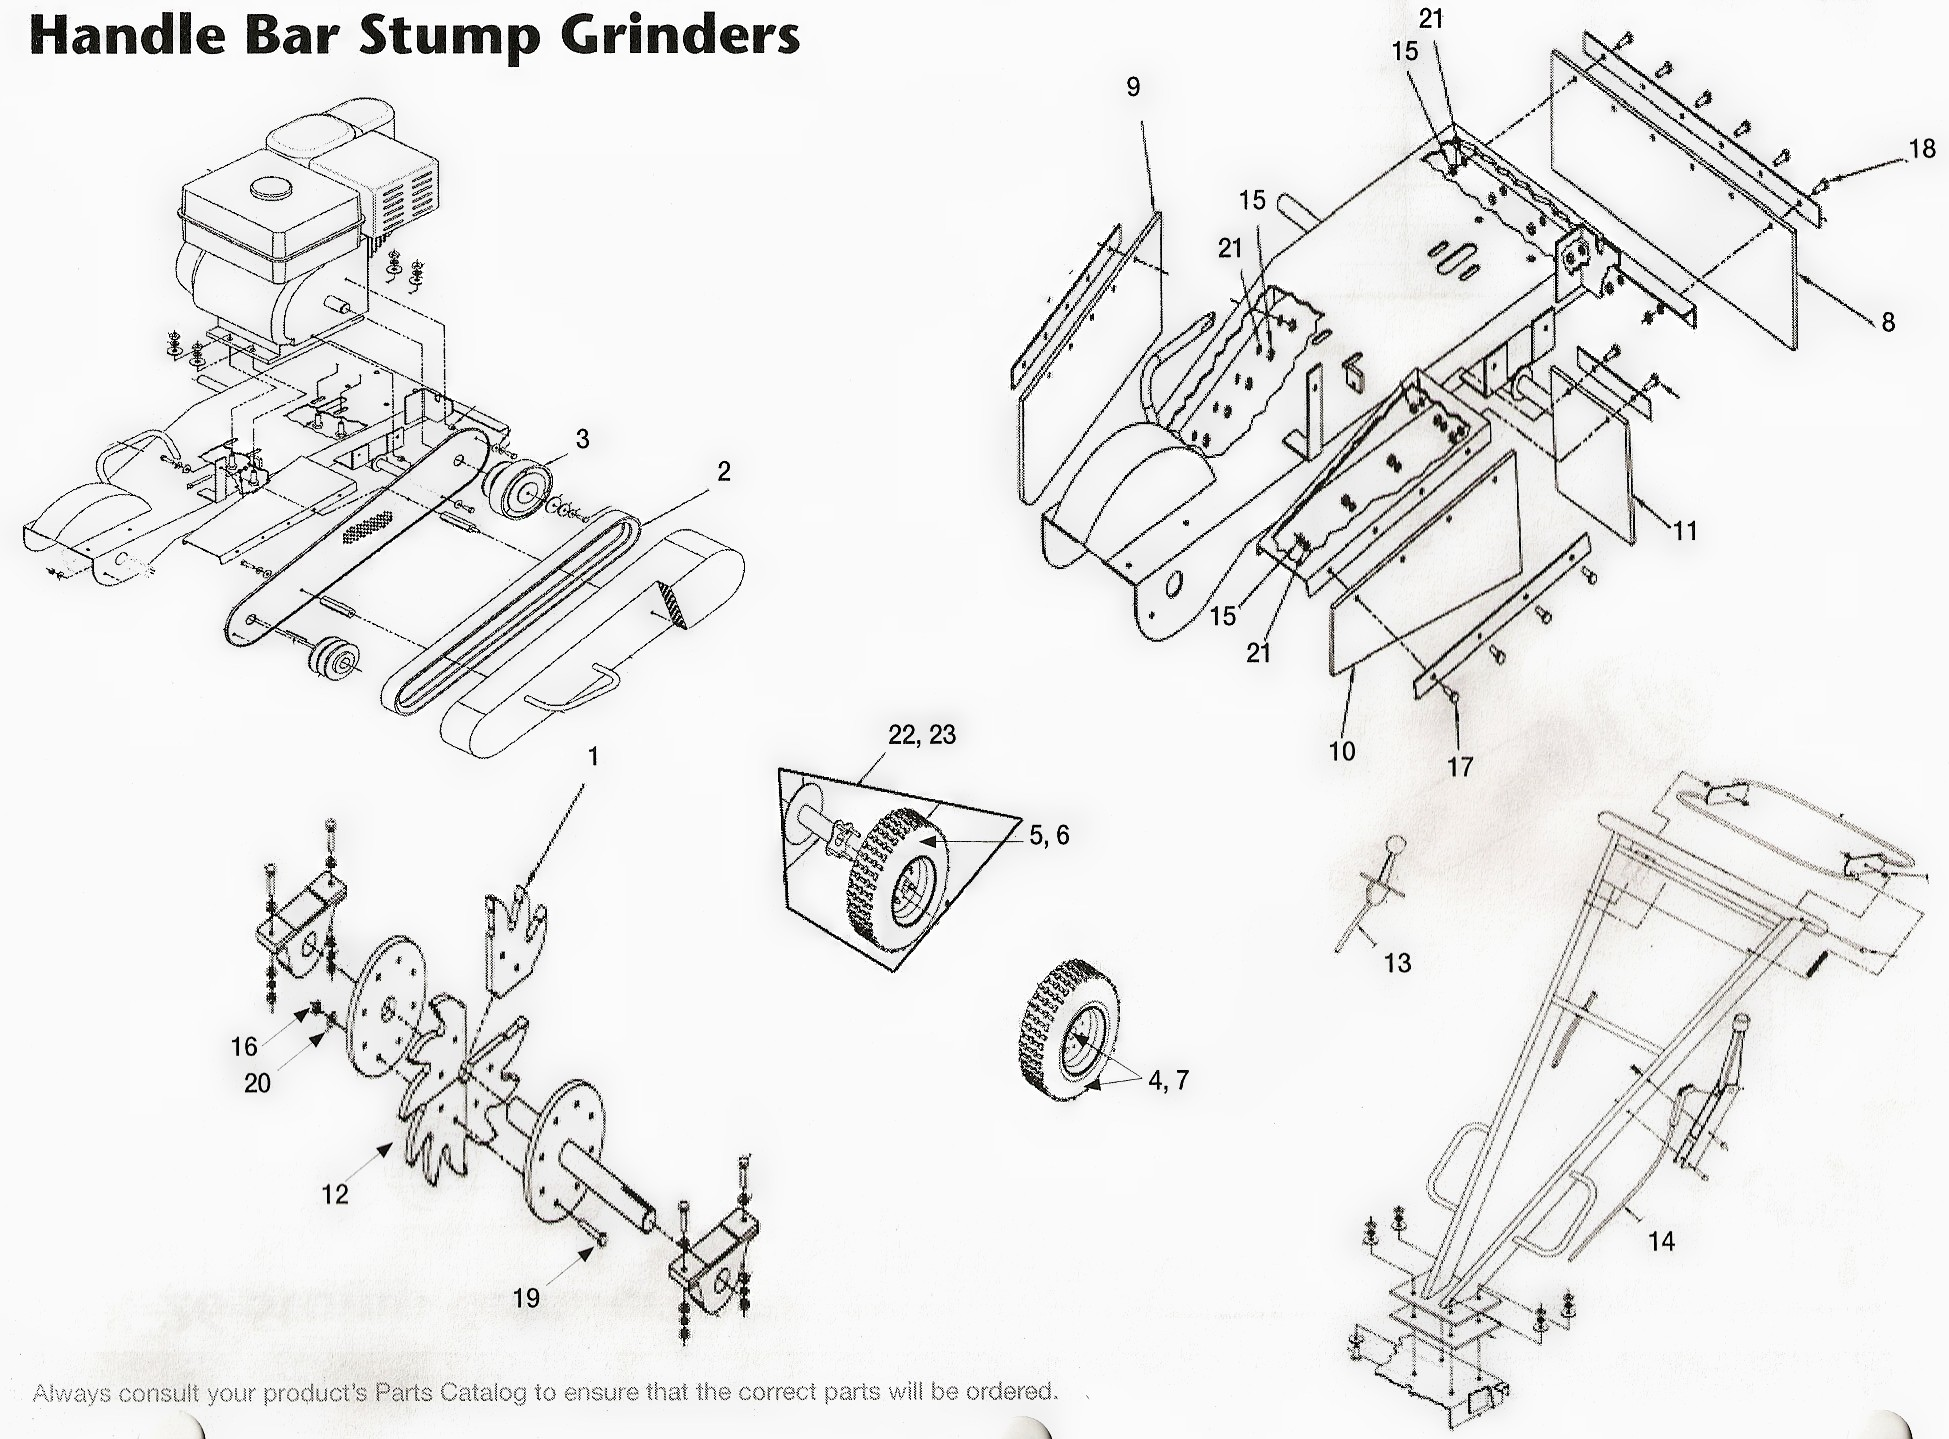 Toro Stump Grinder Diagram, Toro, Free Engine Image For